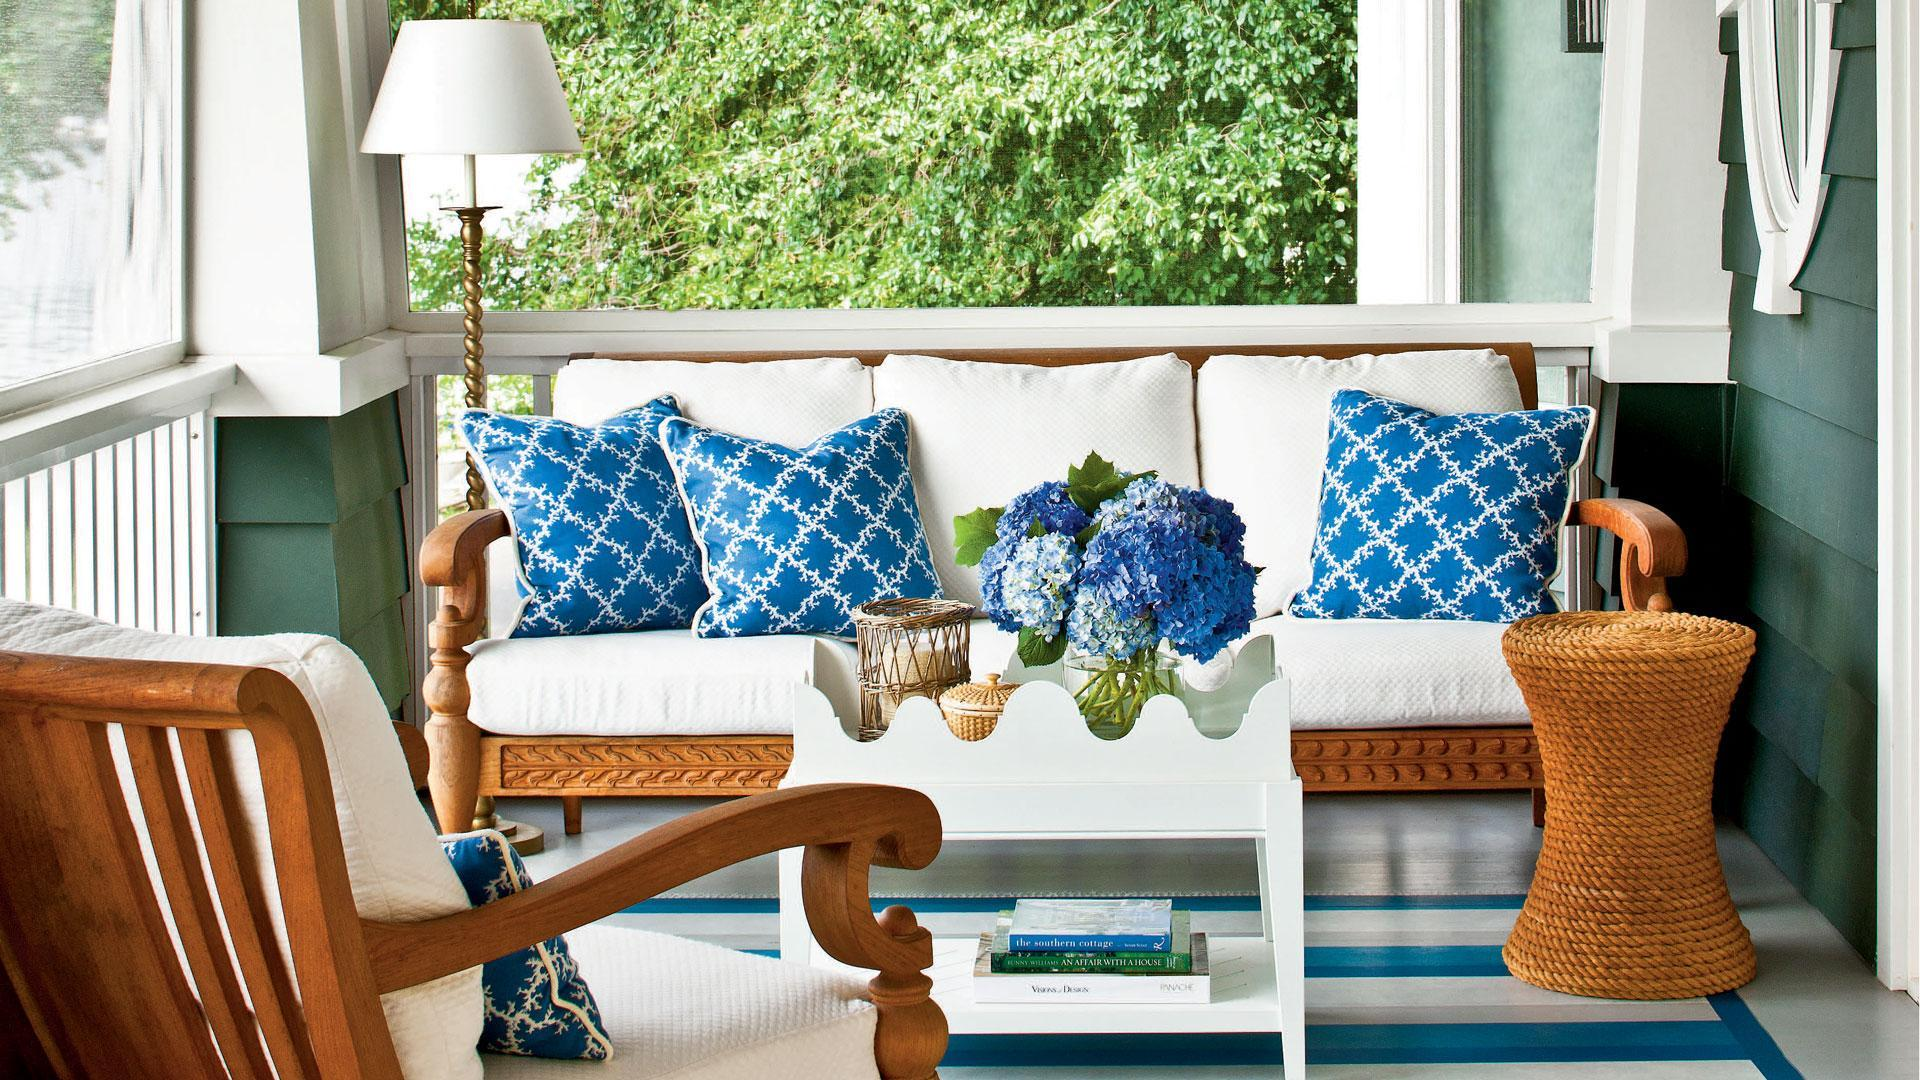 10 Elements of Southern Design